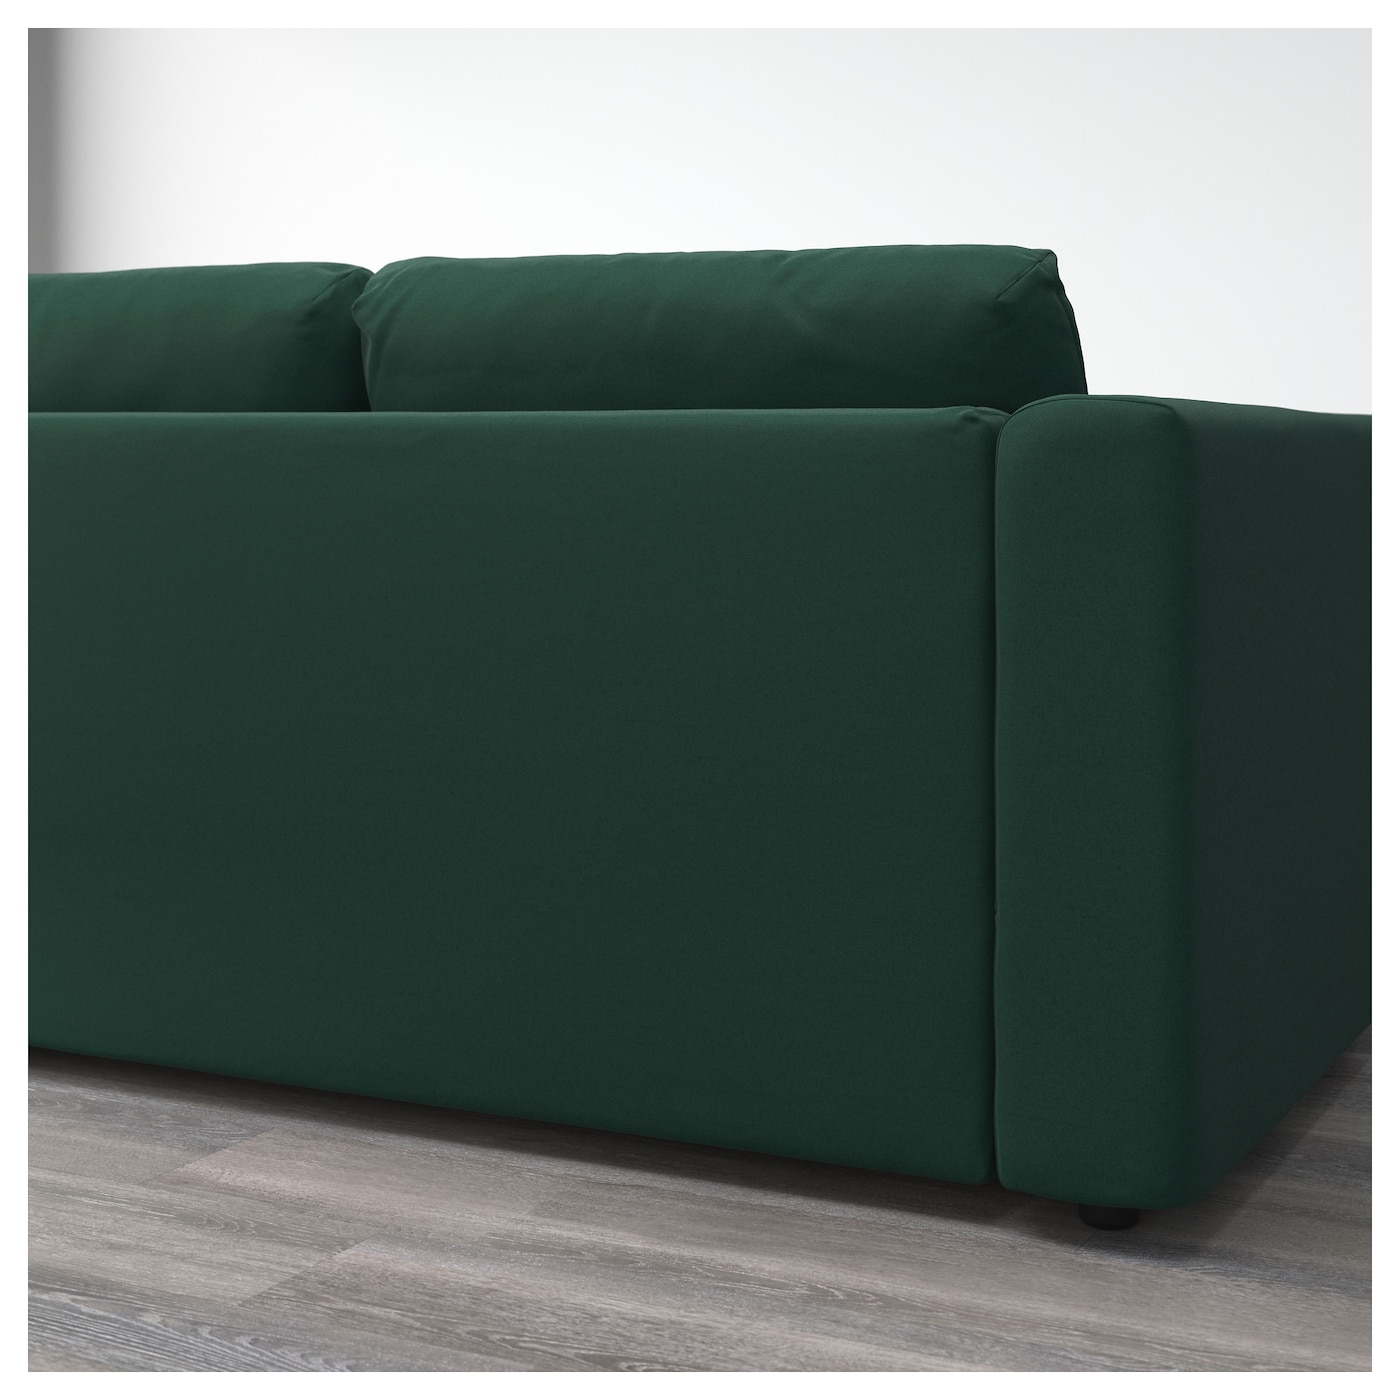 vimle 4 seat sofa with chaise longue gunnared dark green ikea. Black Bedroom Furniture Sets. Home Design Ideas